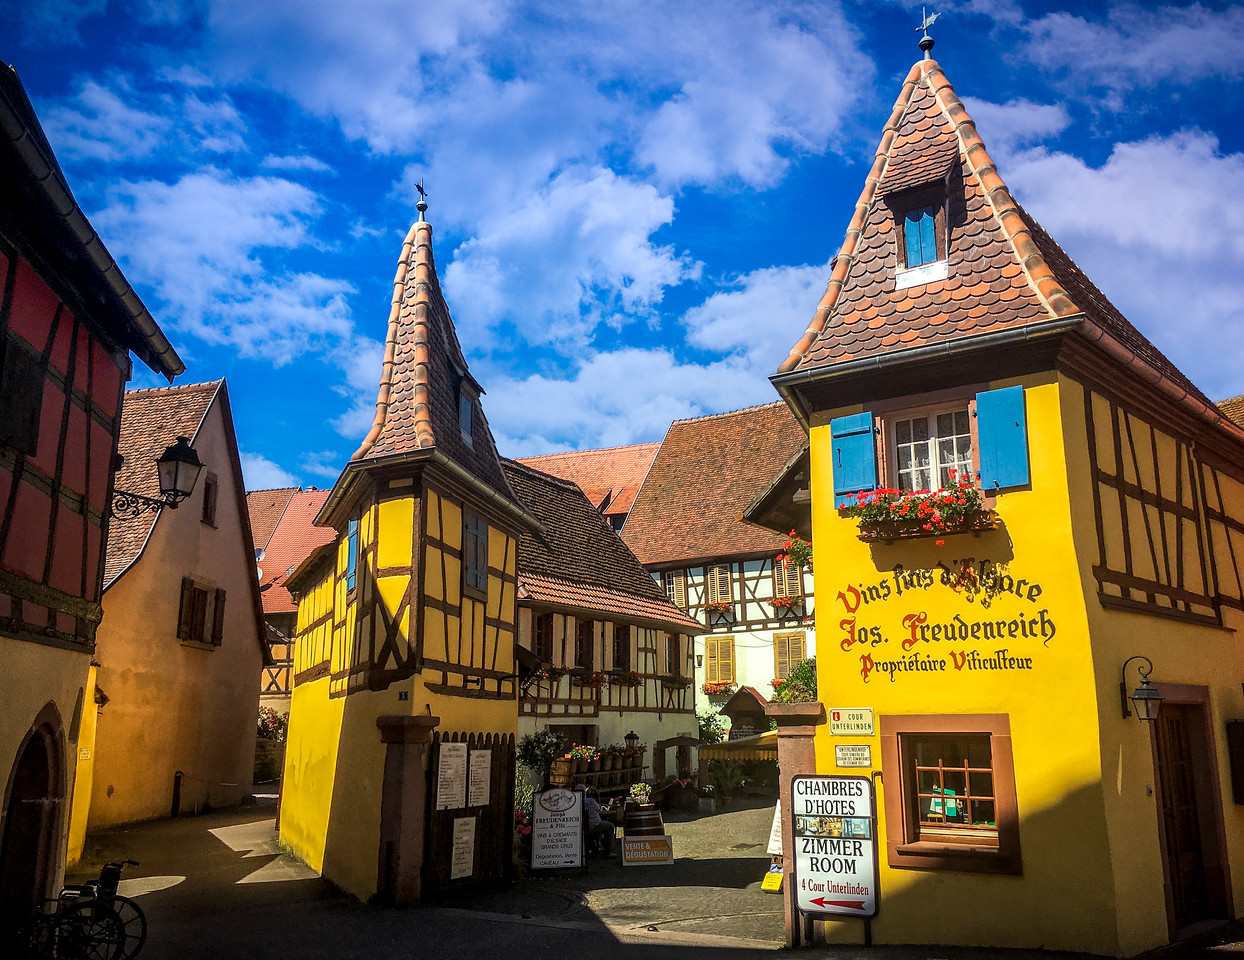 Picturesque colorful Eguisheim. Shot with my iPhone.